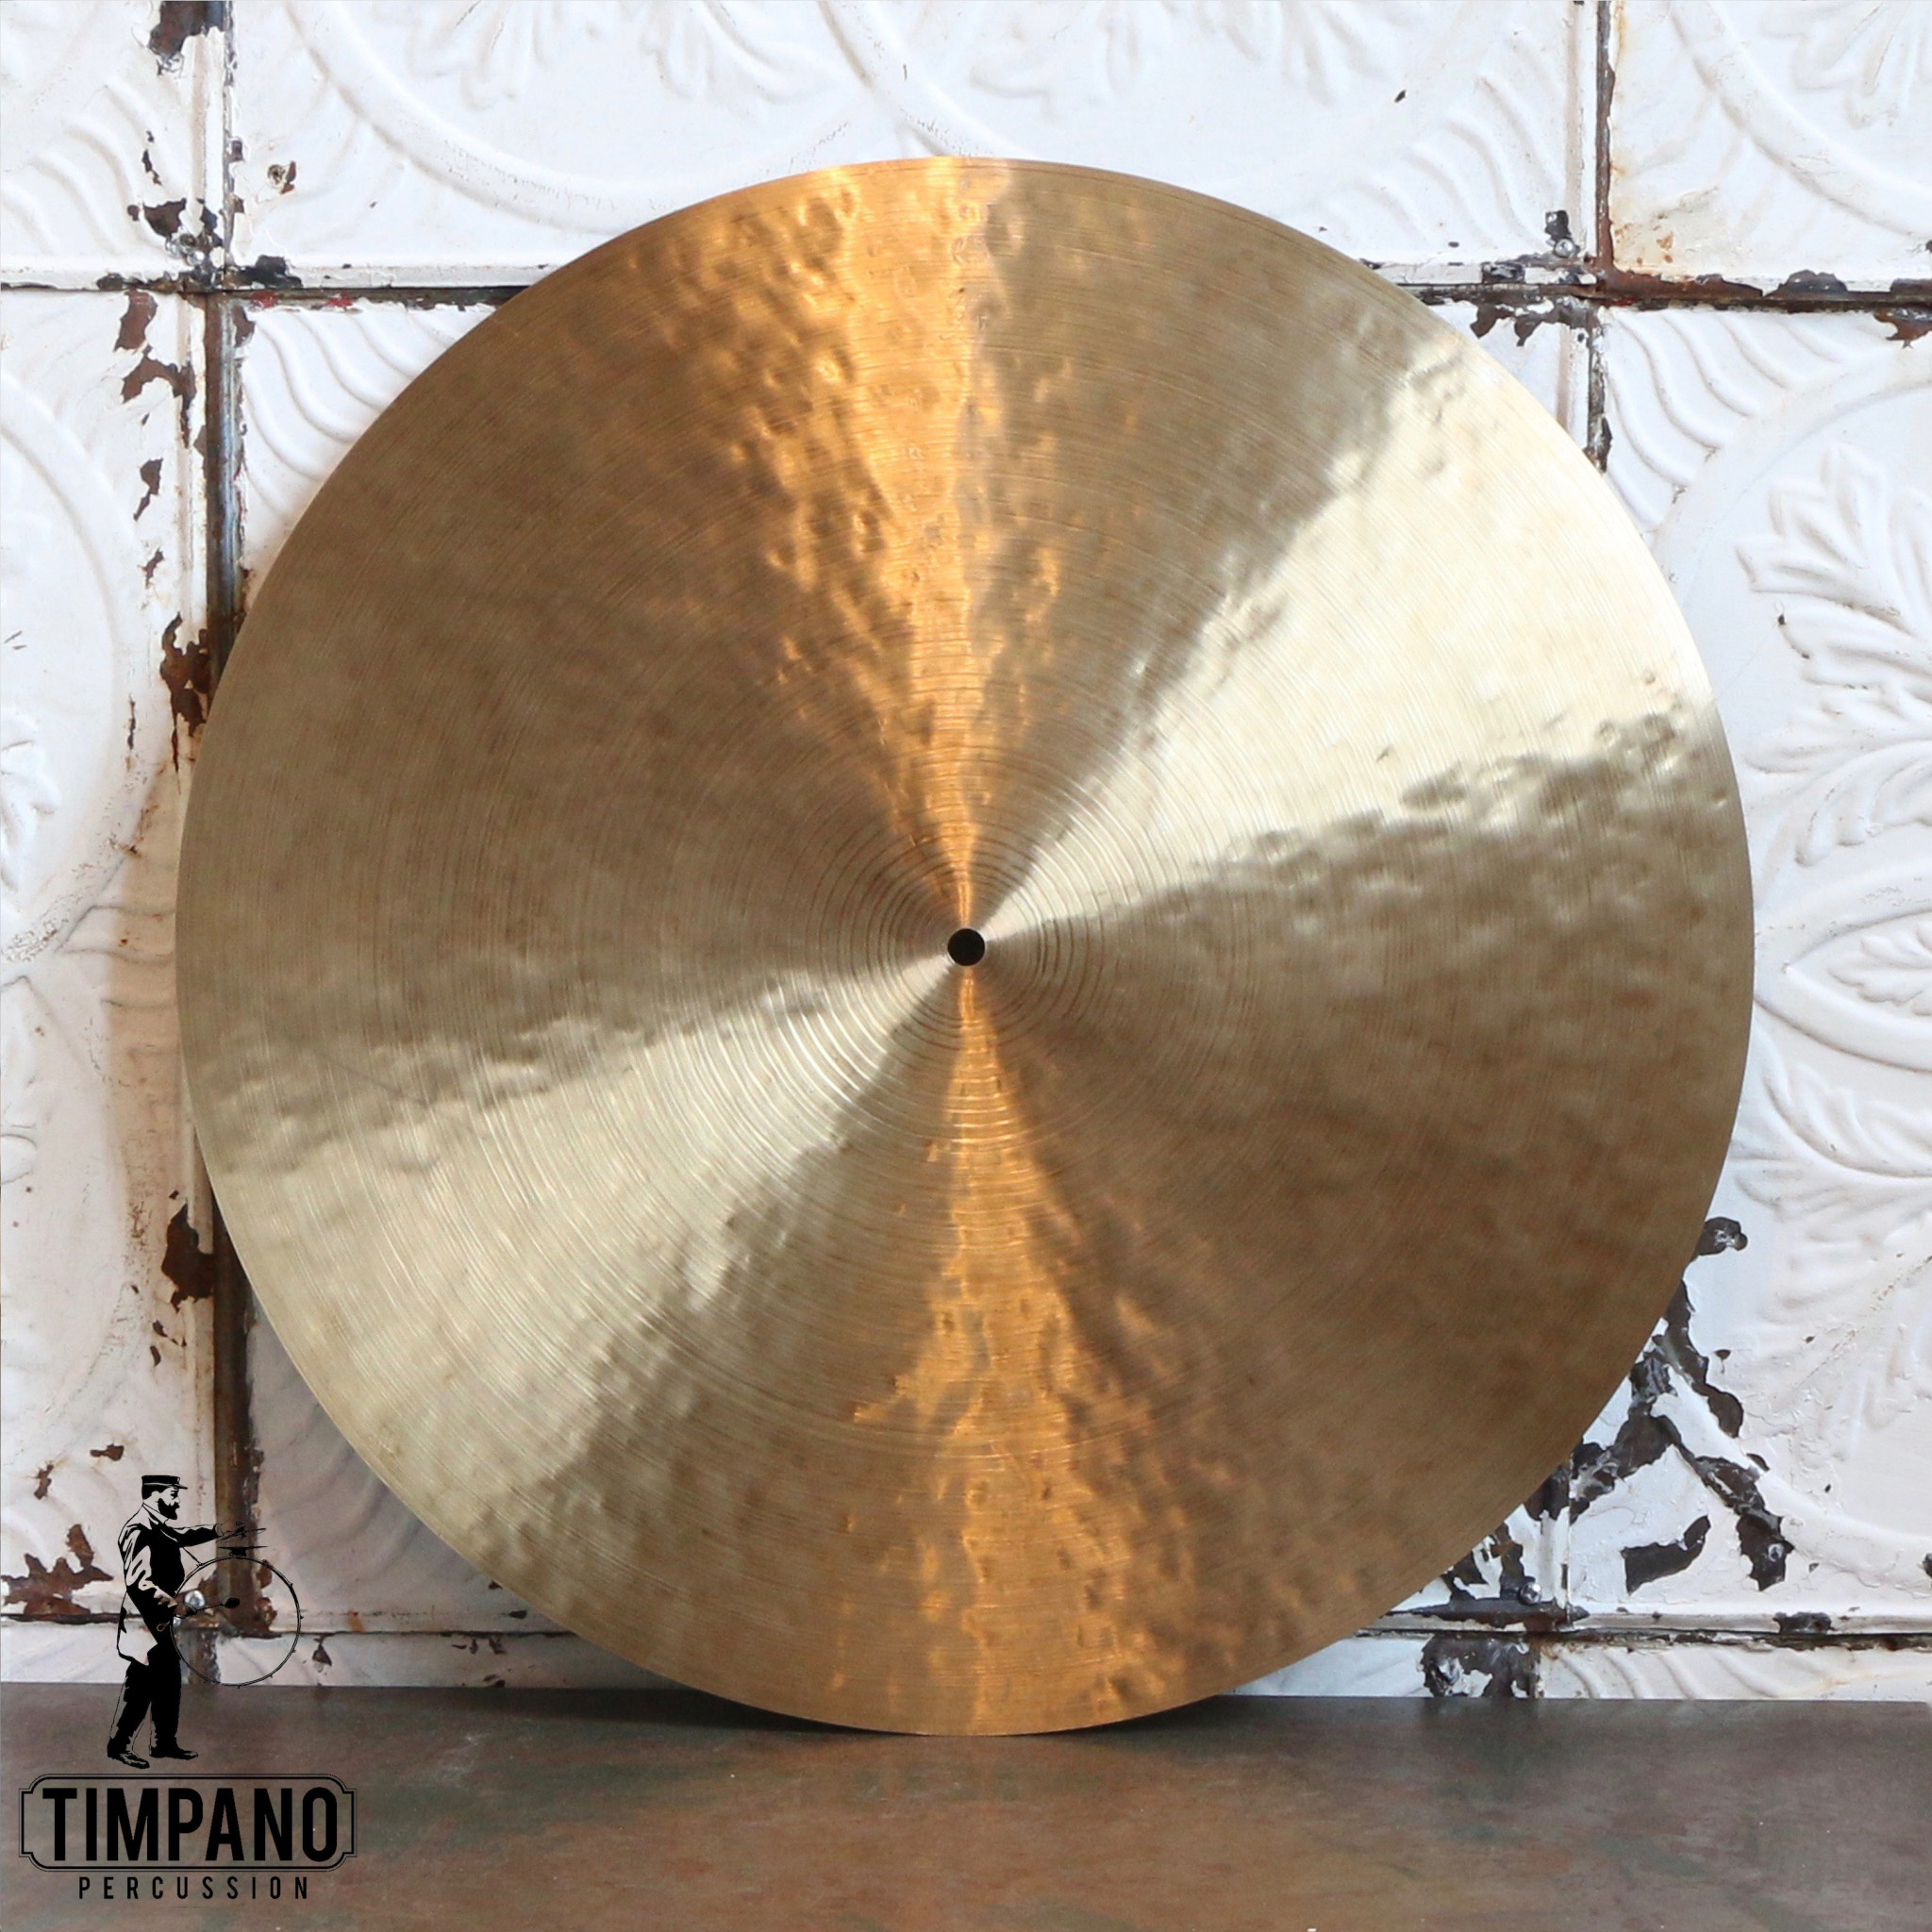 Istanbul Agop Istanbul Agop 30th Anniversary Flat Ride Cymbal 22in